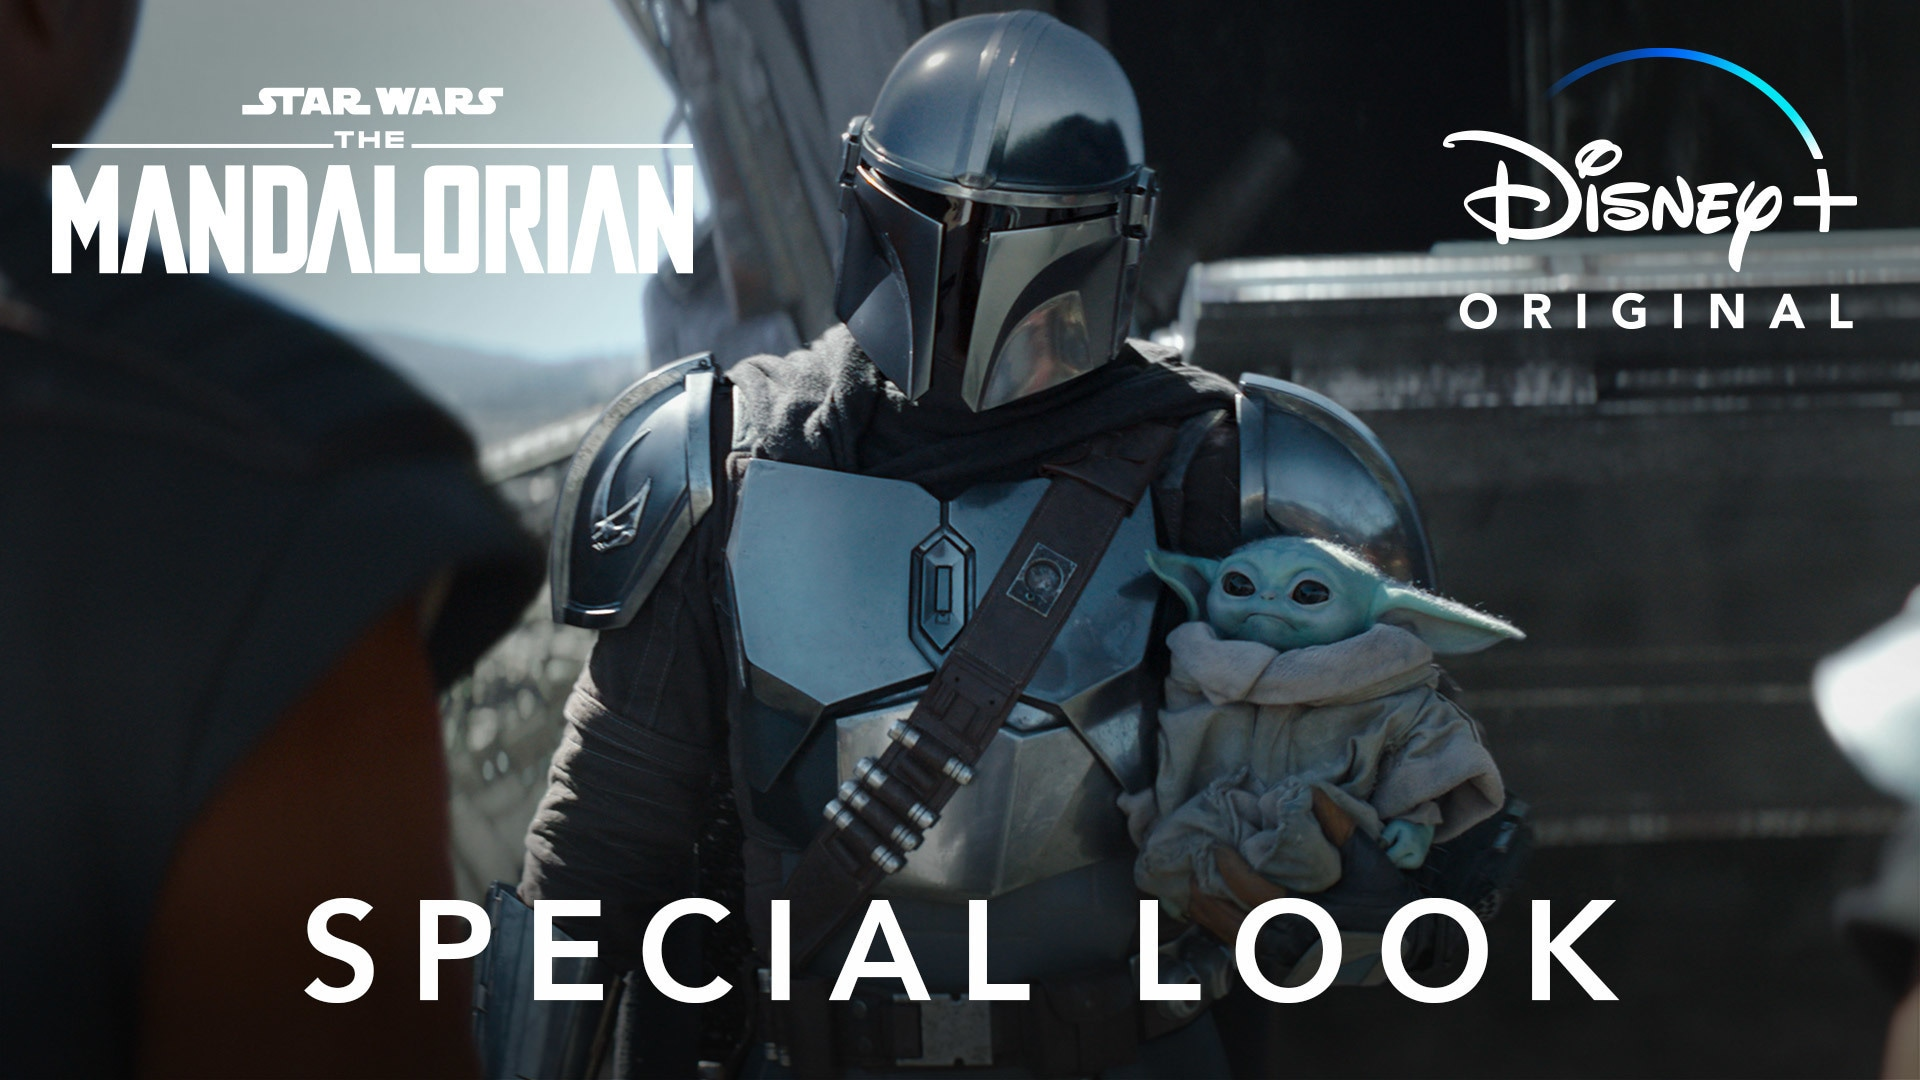 Special Look - The Mandalorian Season 2